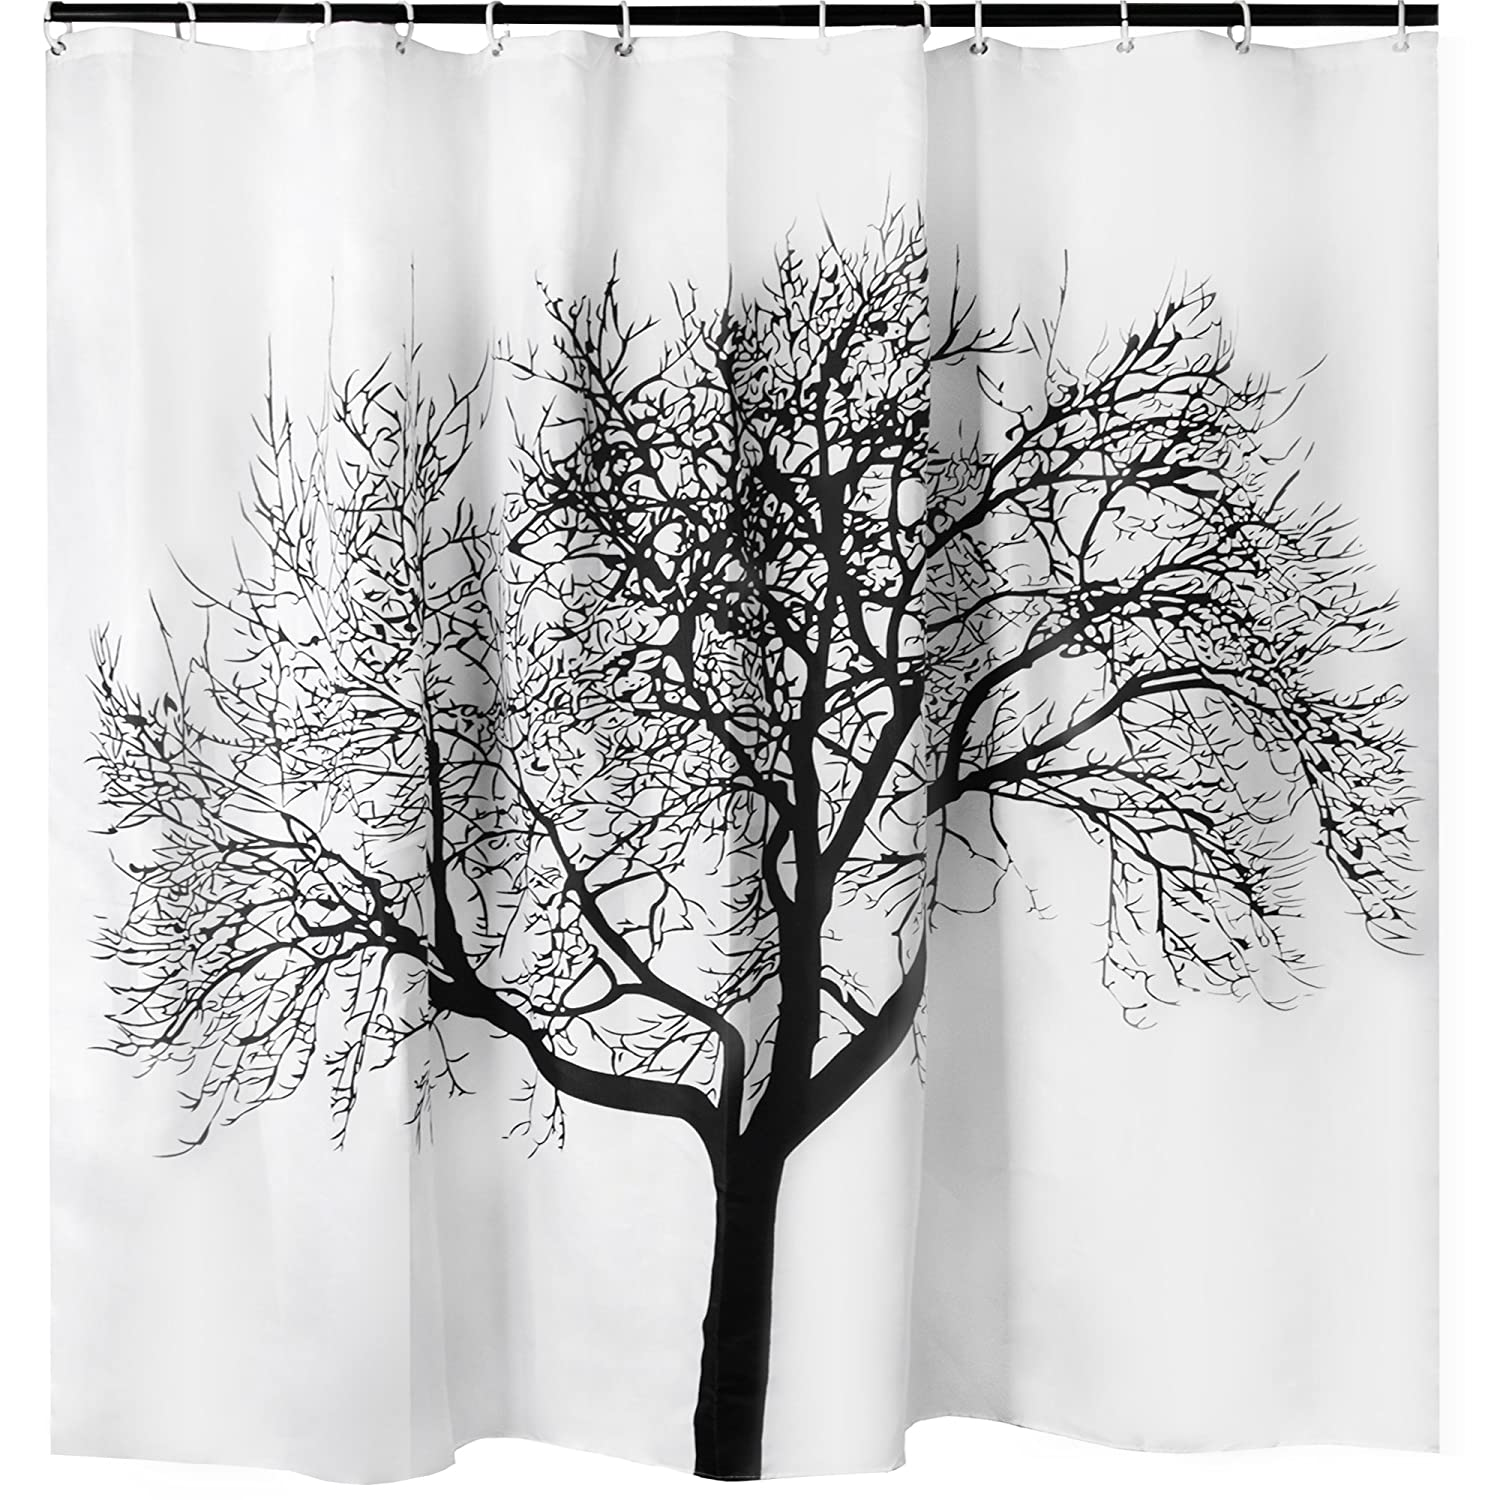 Large Shower Curtain With Tree Design Waterproof Odorless Eco Friendly White Polyester Shower Curtain Creatov design SYNCHKG084823